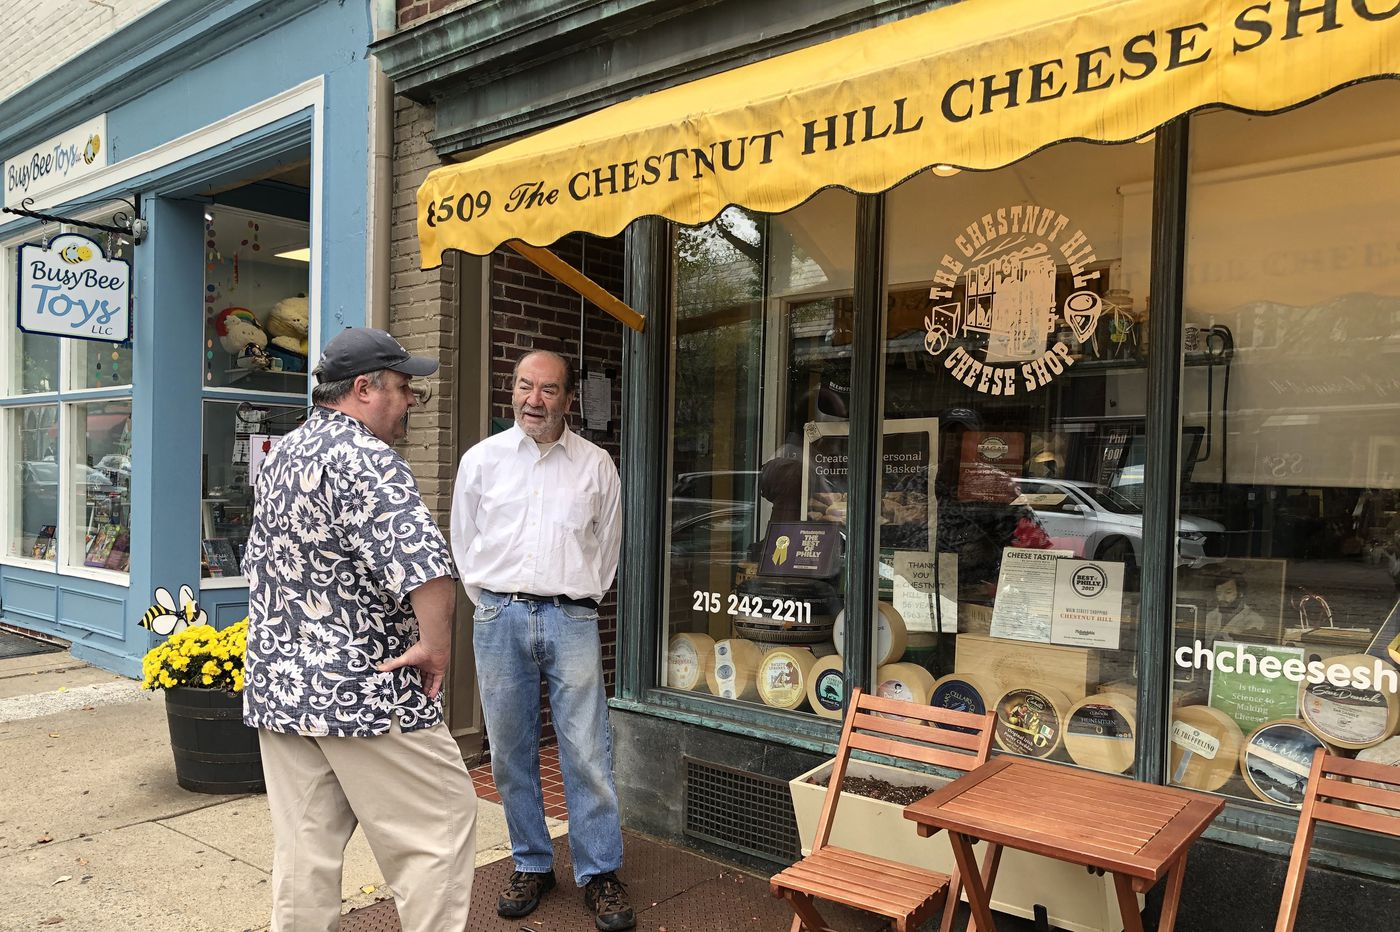 Chestnut Hill Cheese Shop closes after 56 years as owner retires